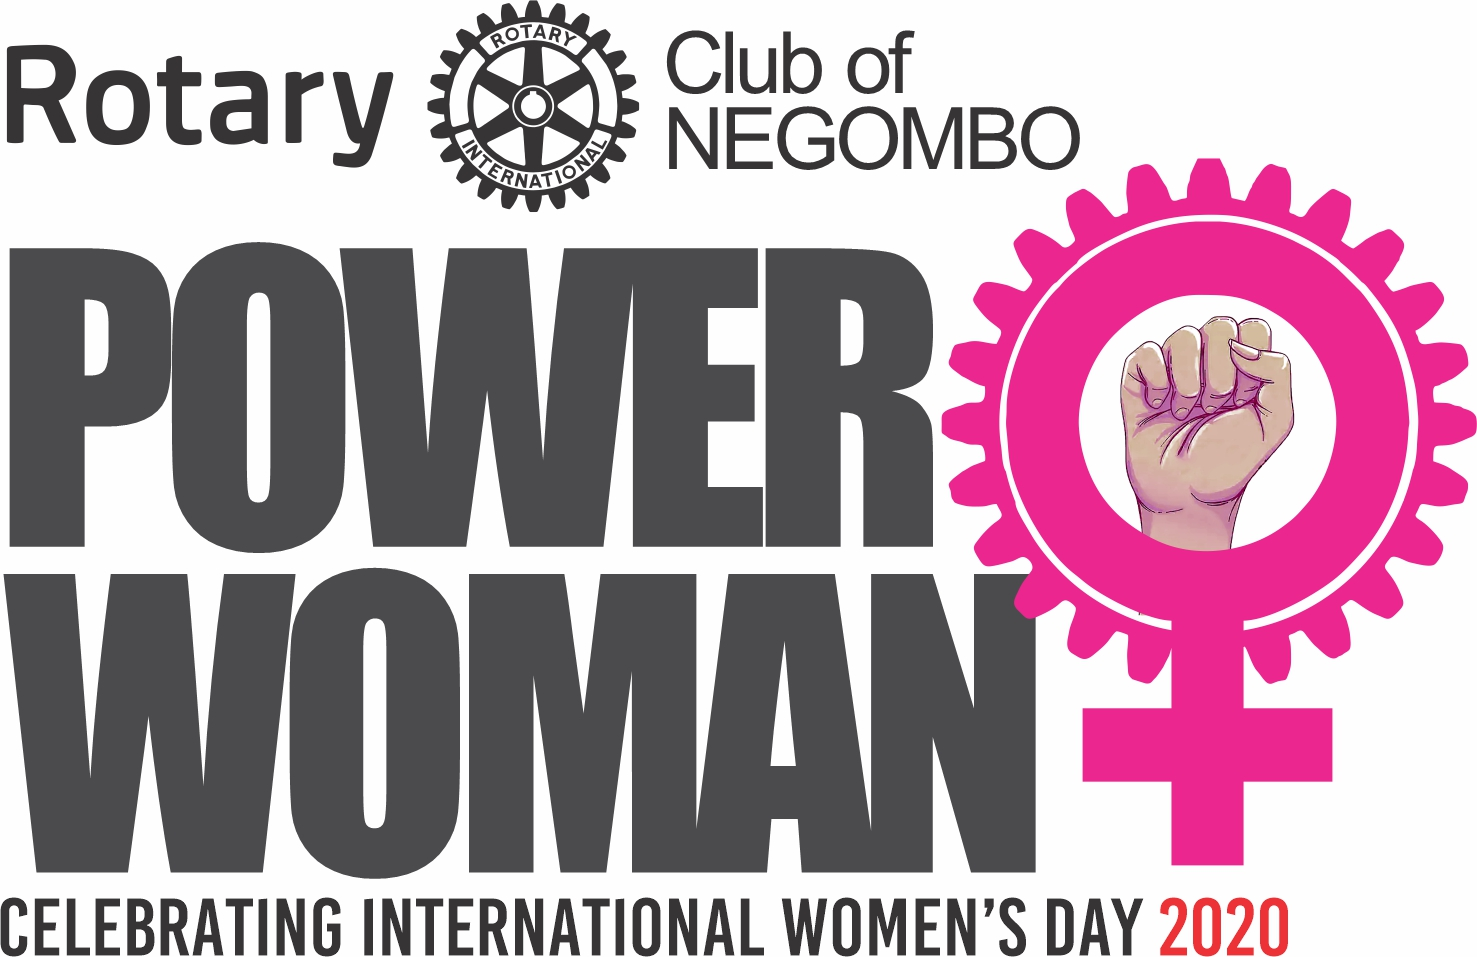 'Power Woman' from Rotary Negombo set for 8th March with drawing over 5,000 Women